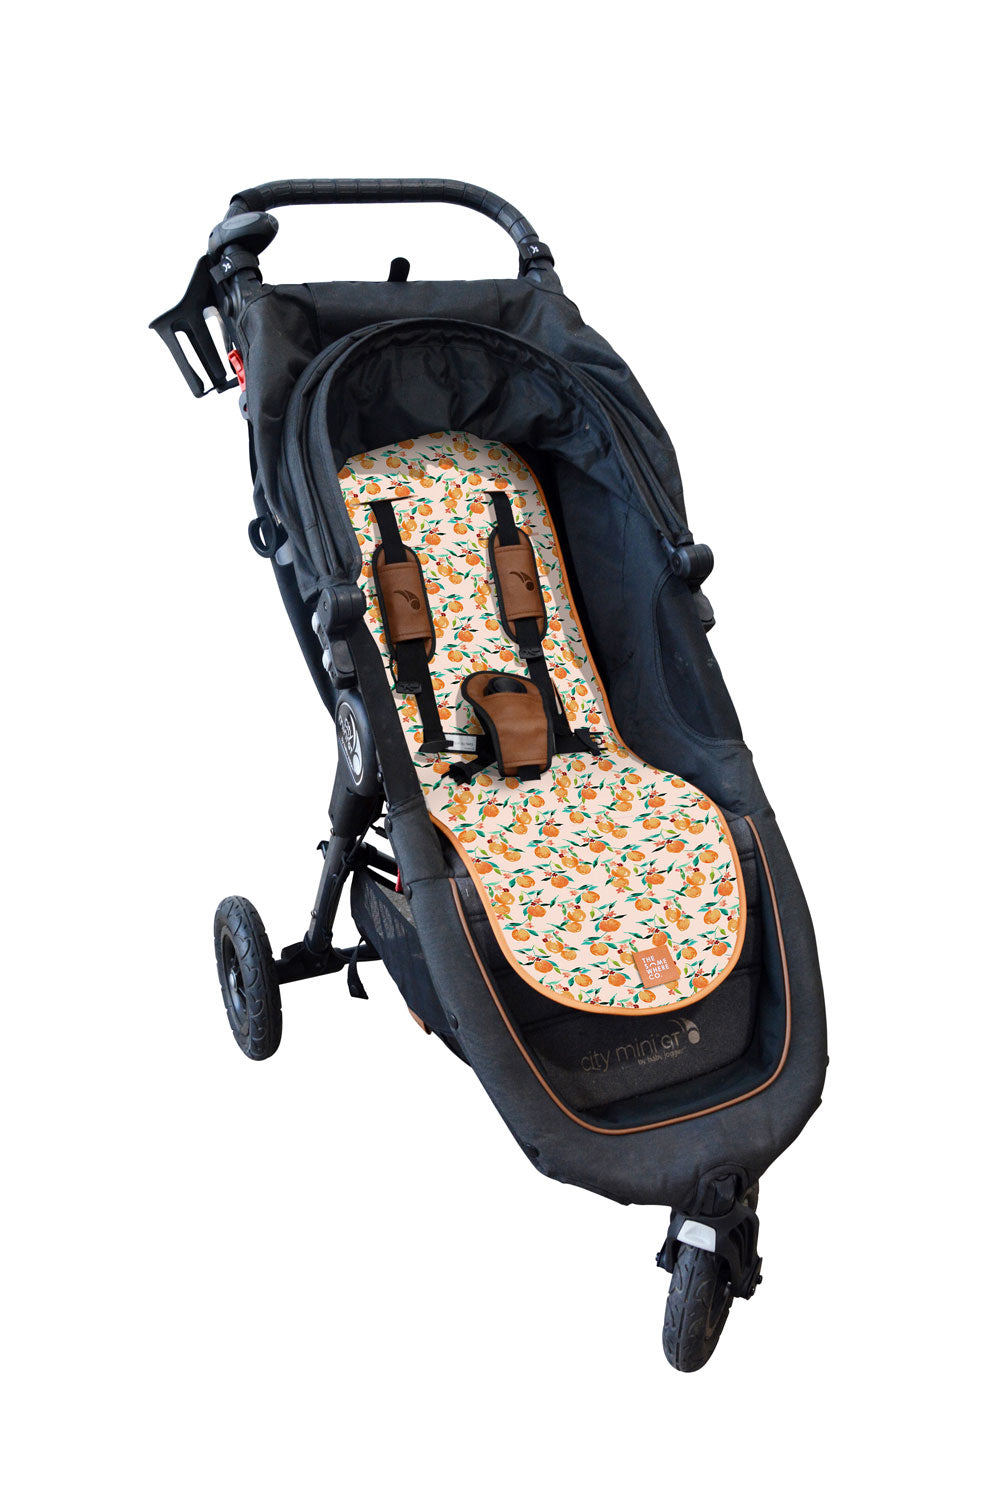 Orange Blossom Pram Liner